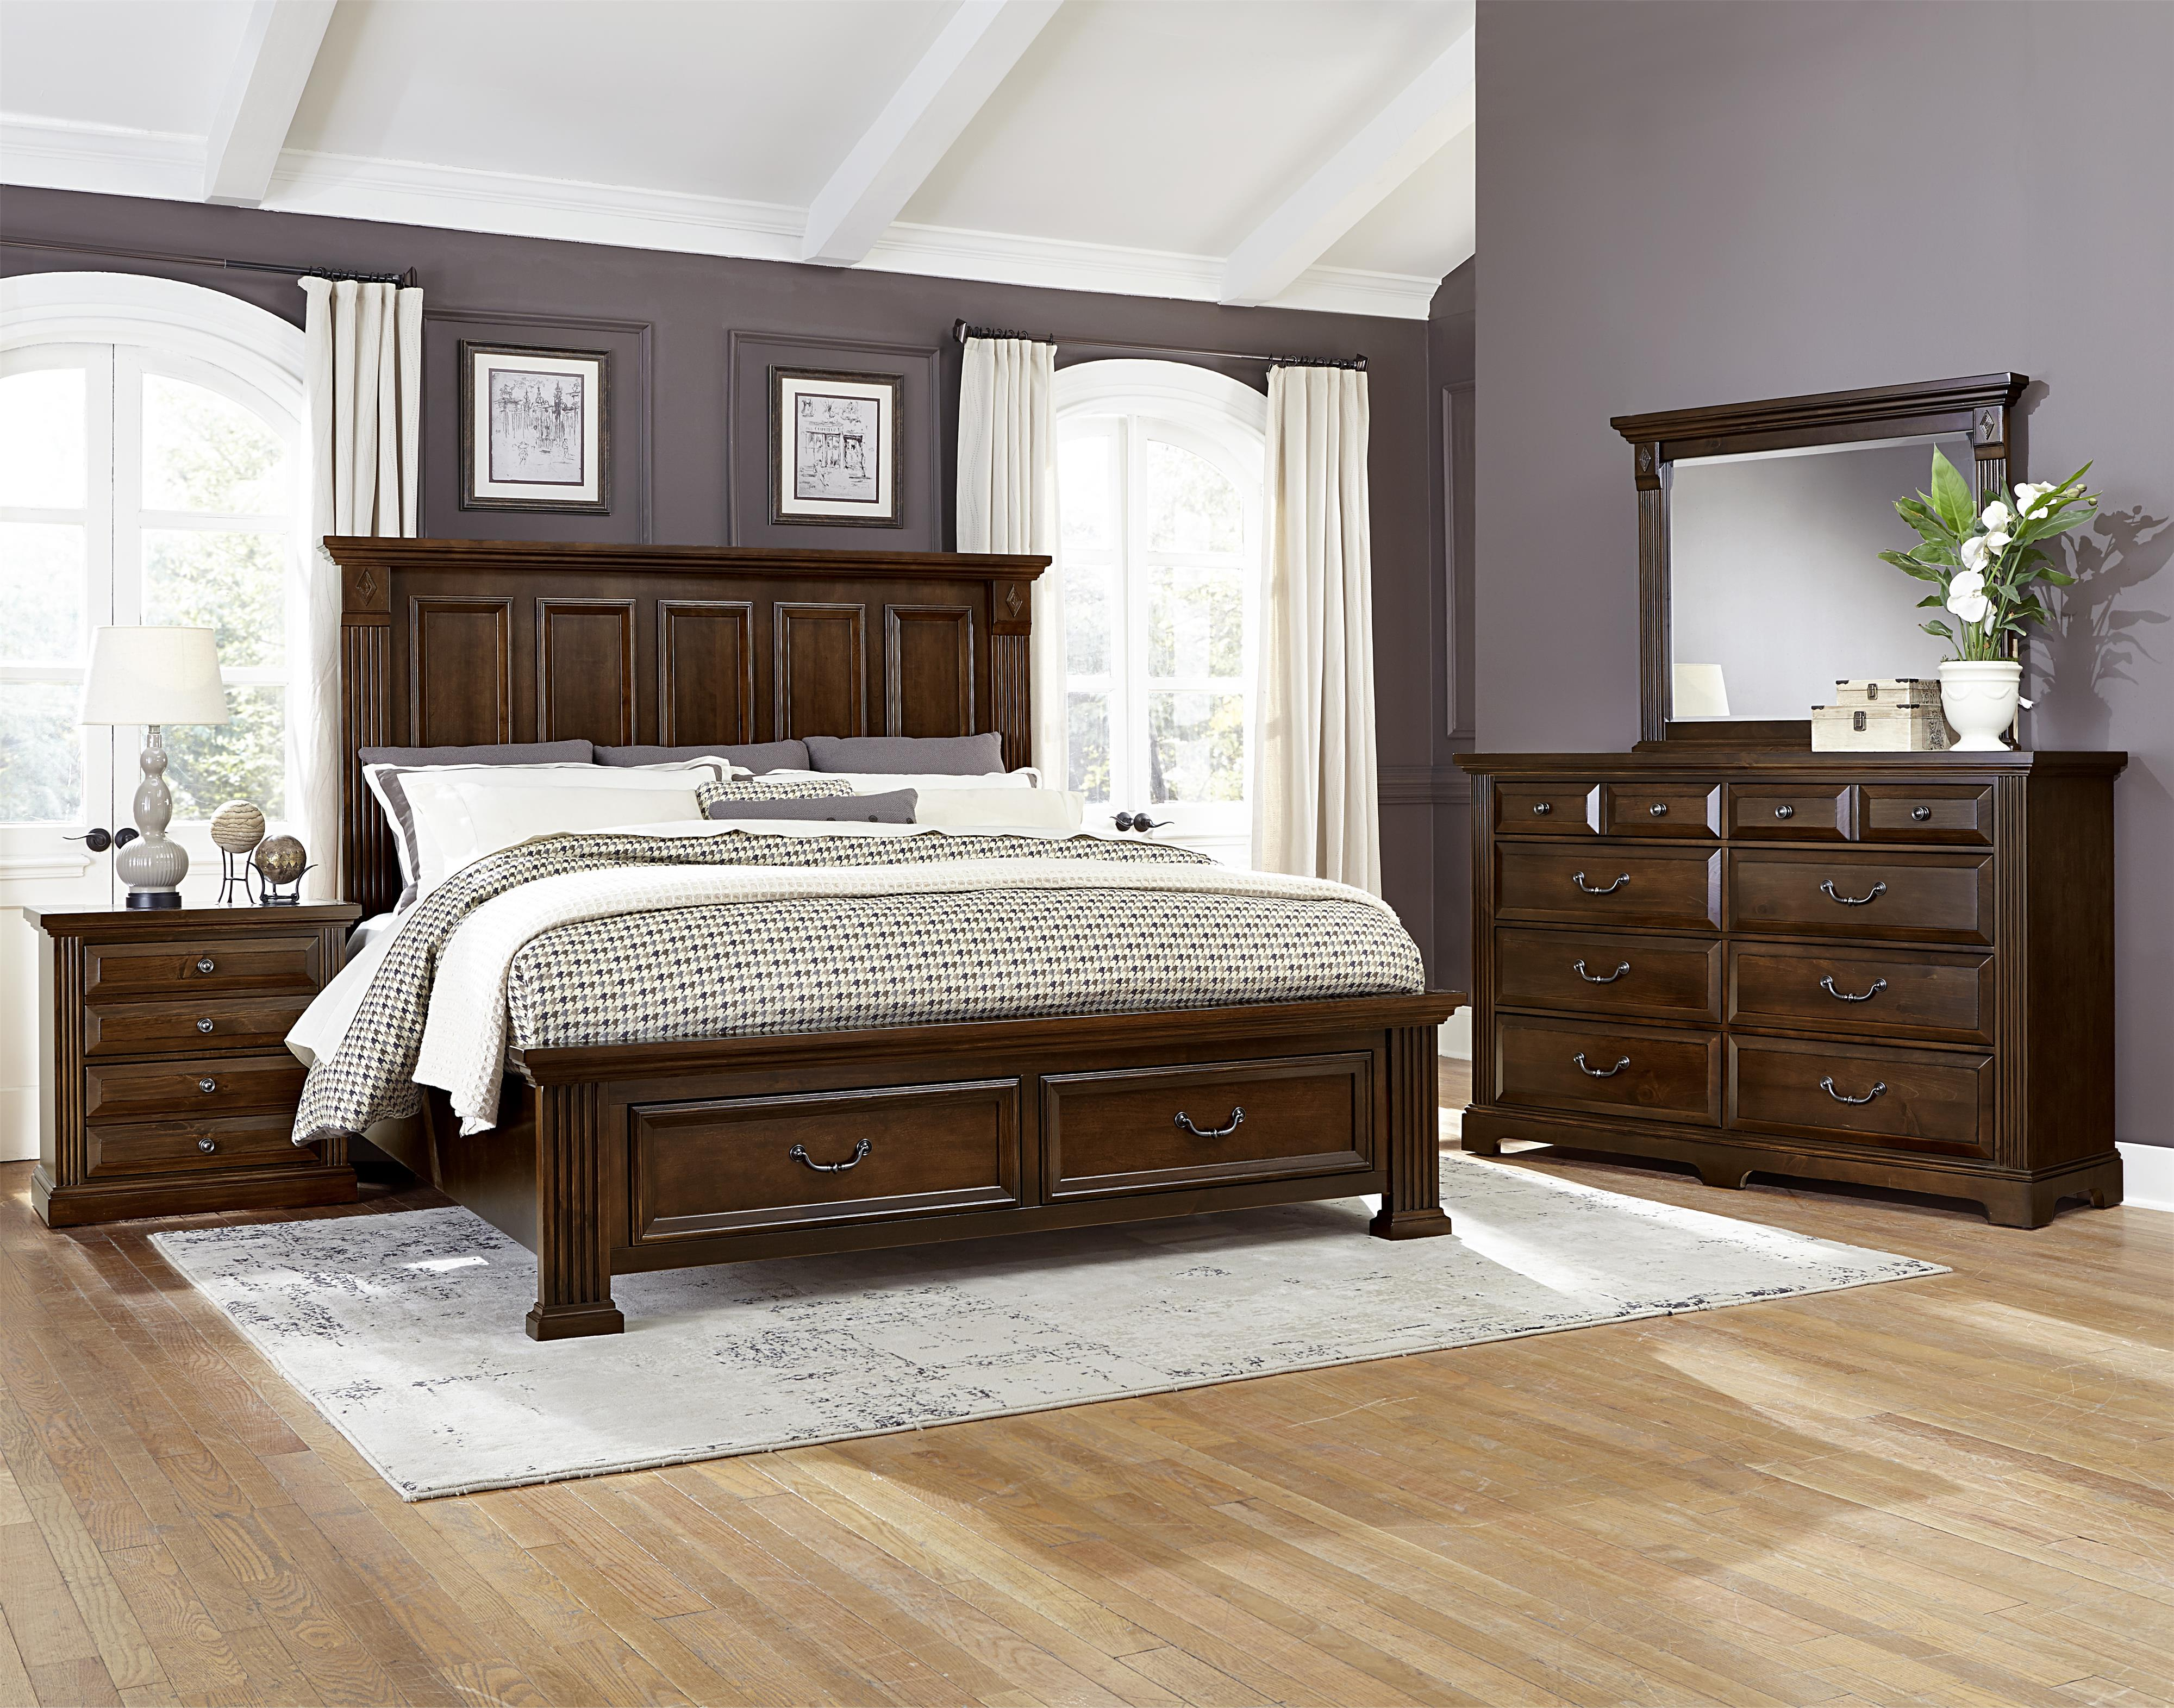 Vaughan Bassett Woodlands Queen Bedroom Group - Item Number: BB98 Q Bedroom Group 4